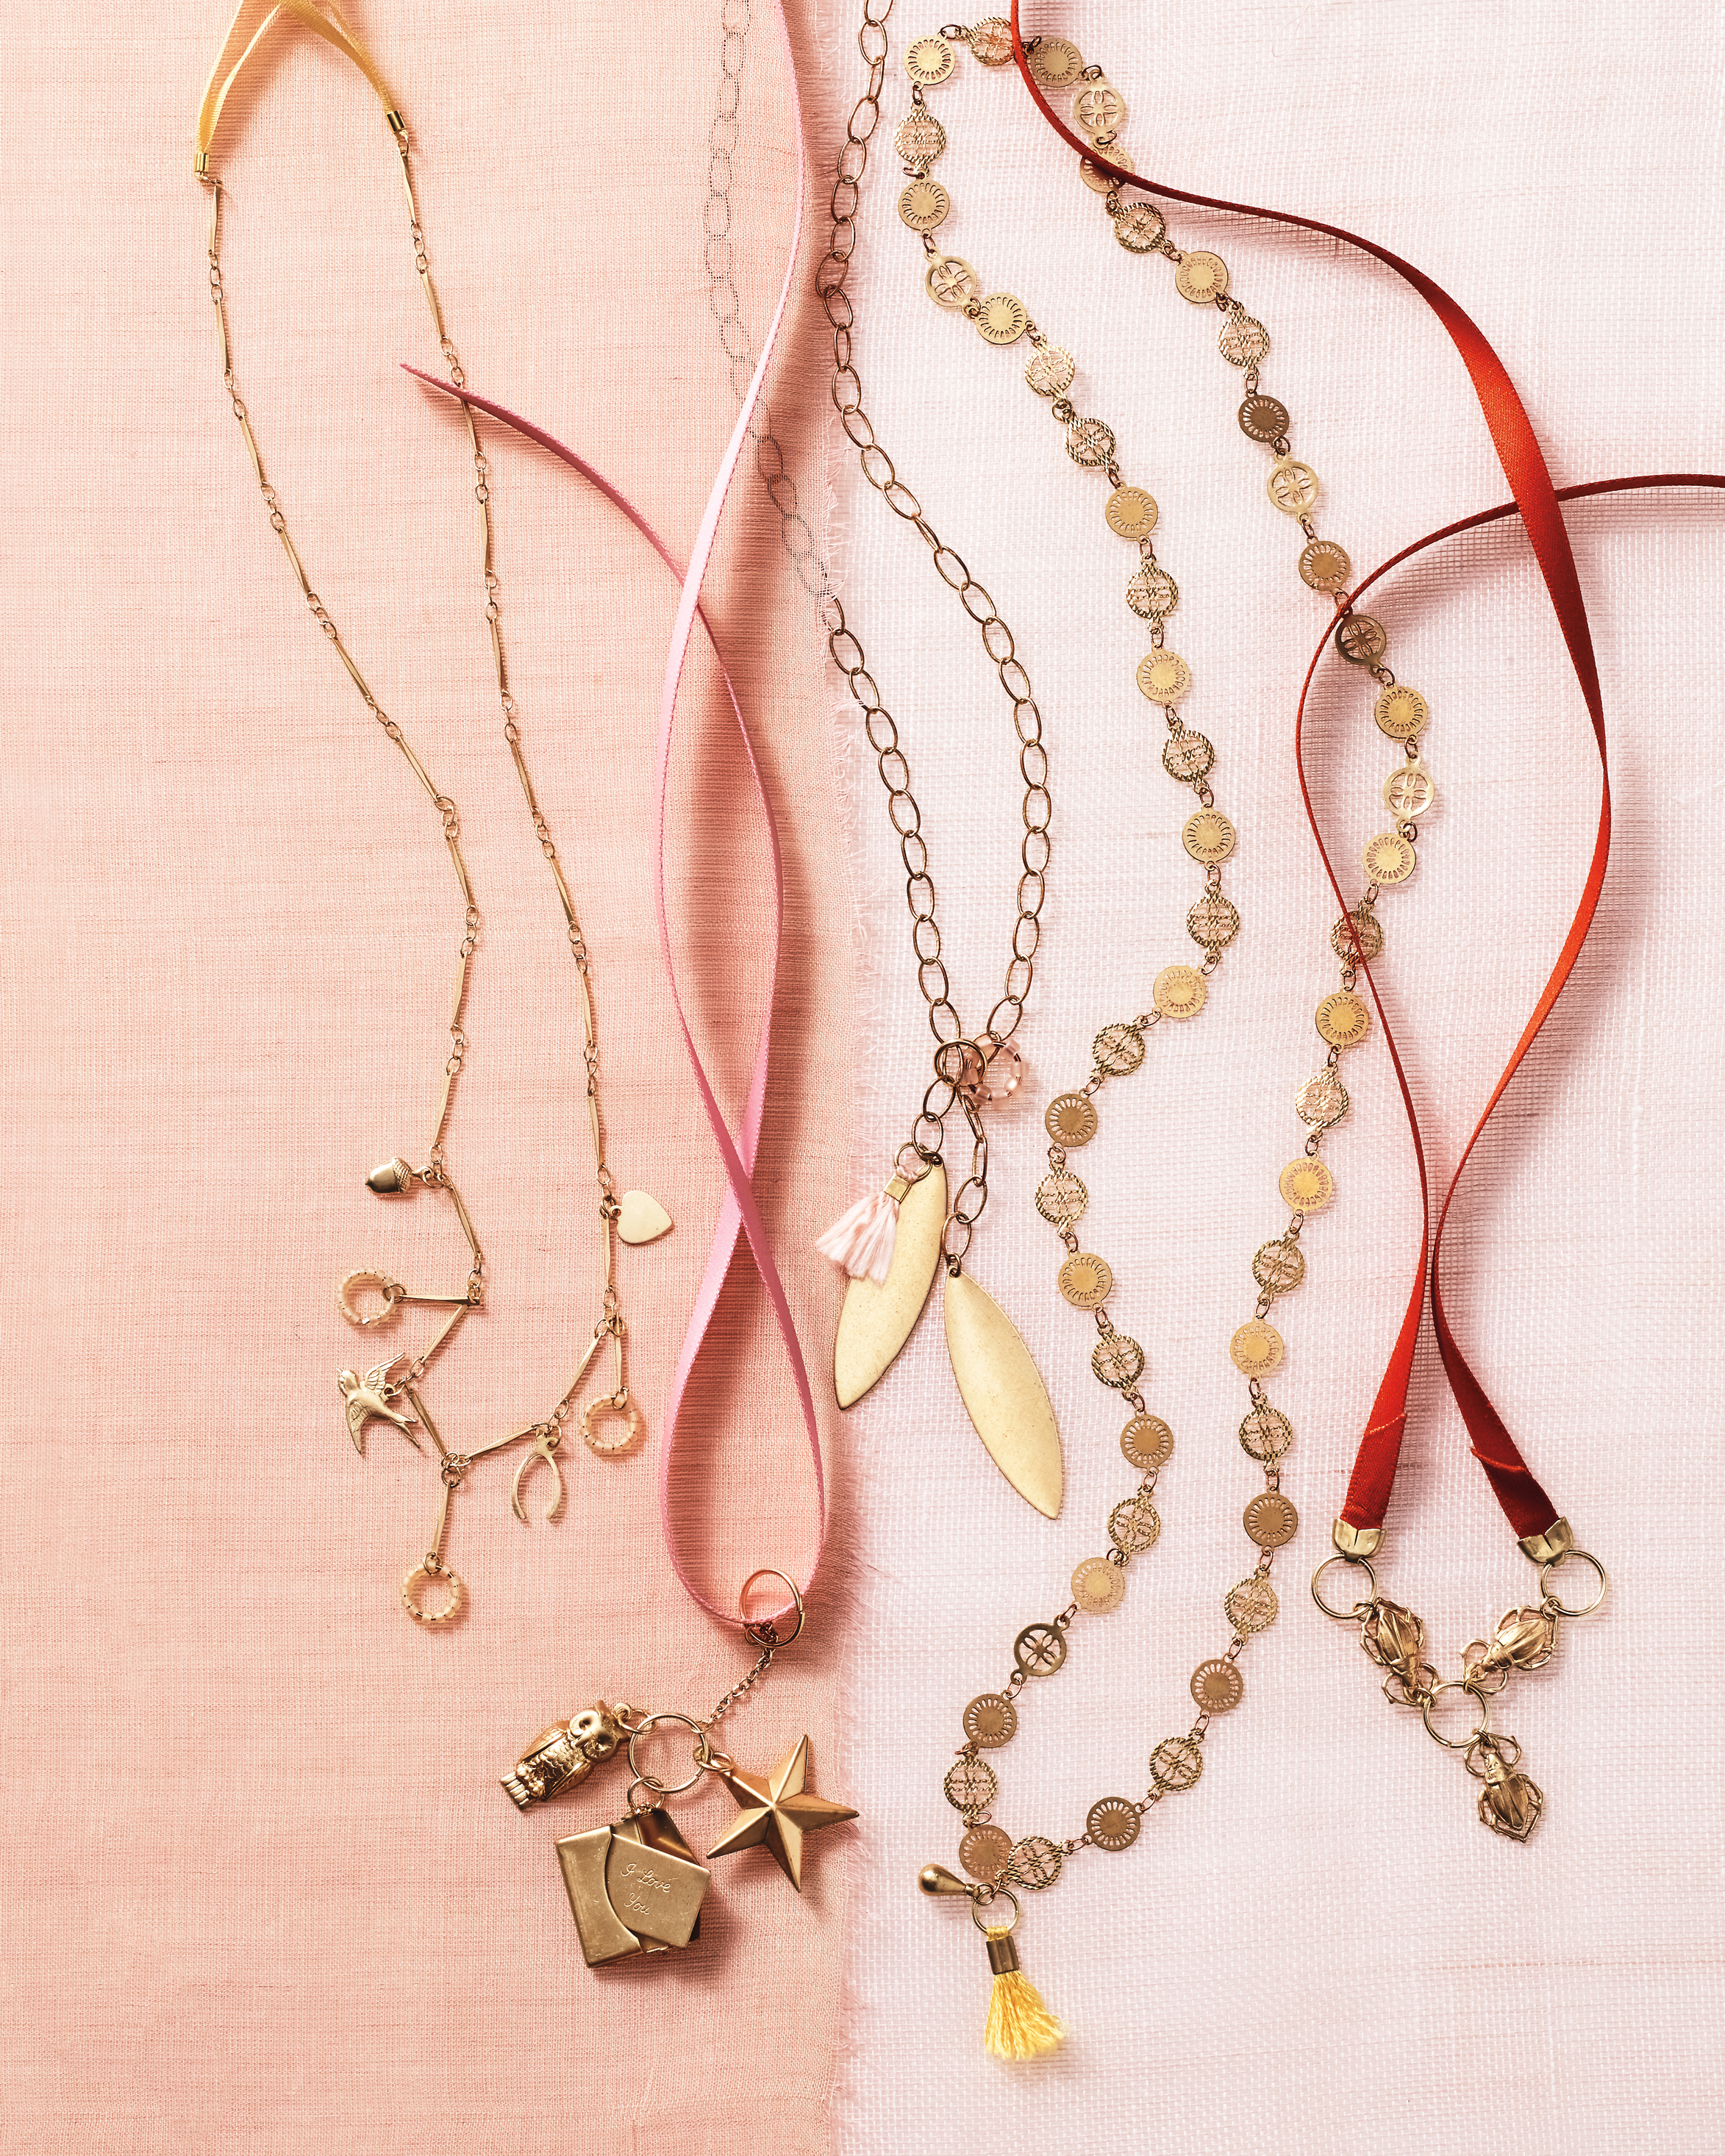 f3be742b1 30 Handmade Necklaces That Make a Stunning First Impression | Martha ...